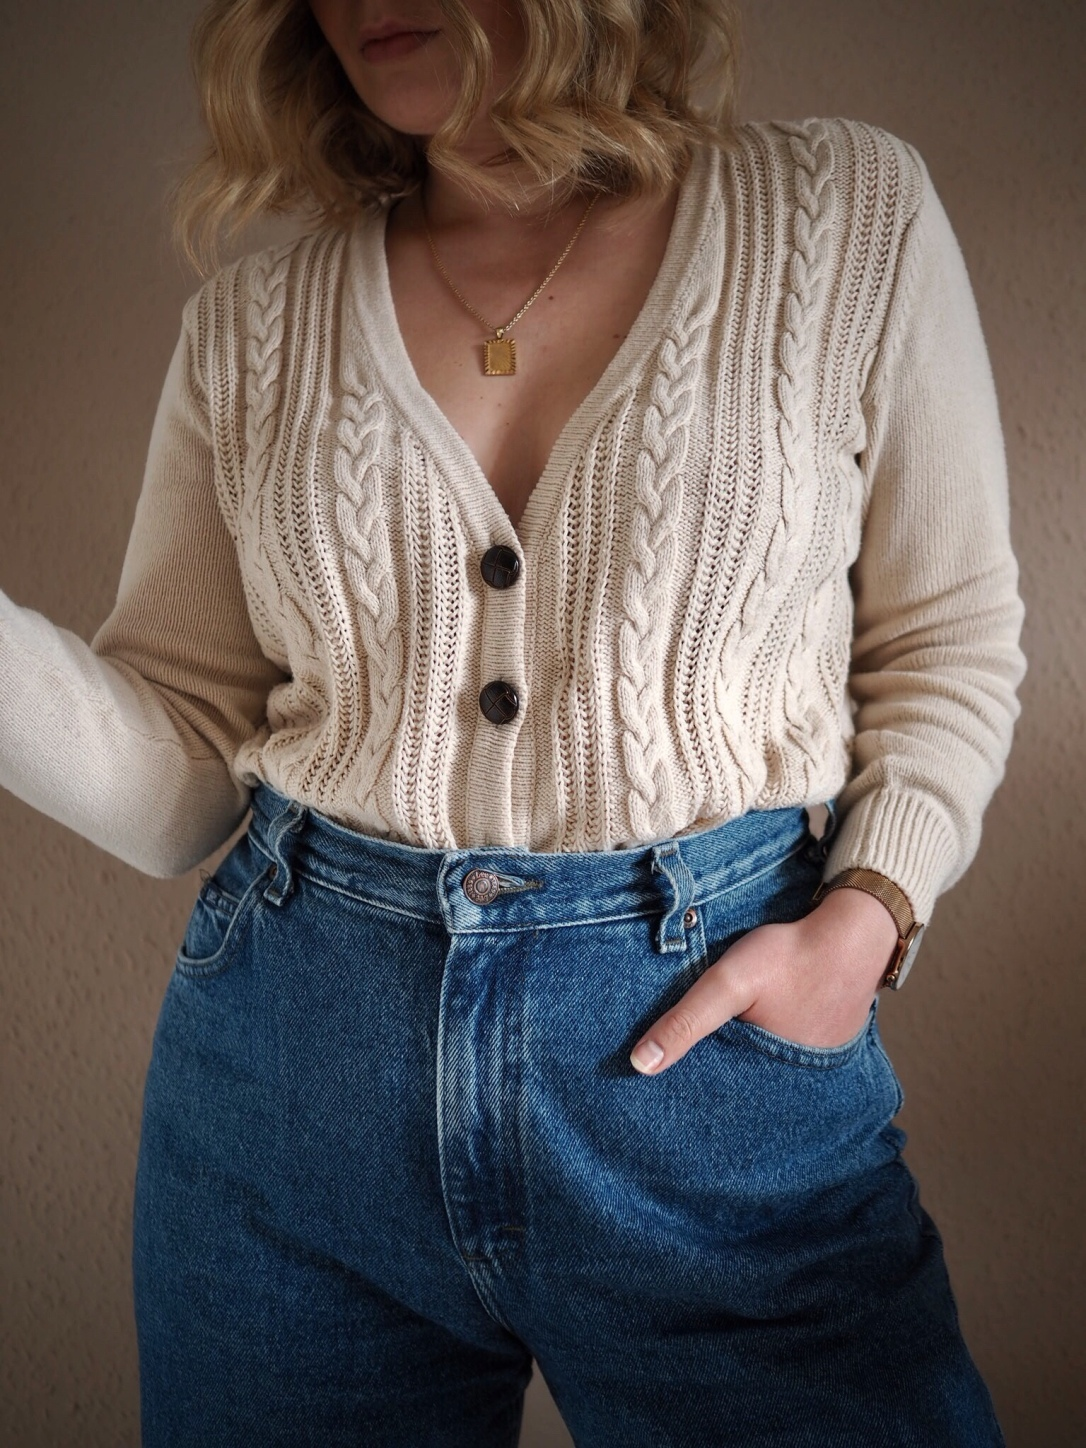 Vintage mom jeans and cable knit cardigan